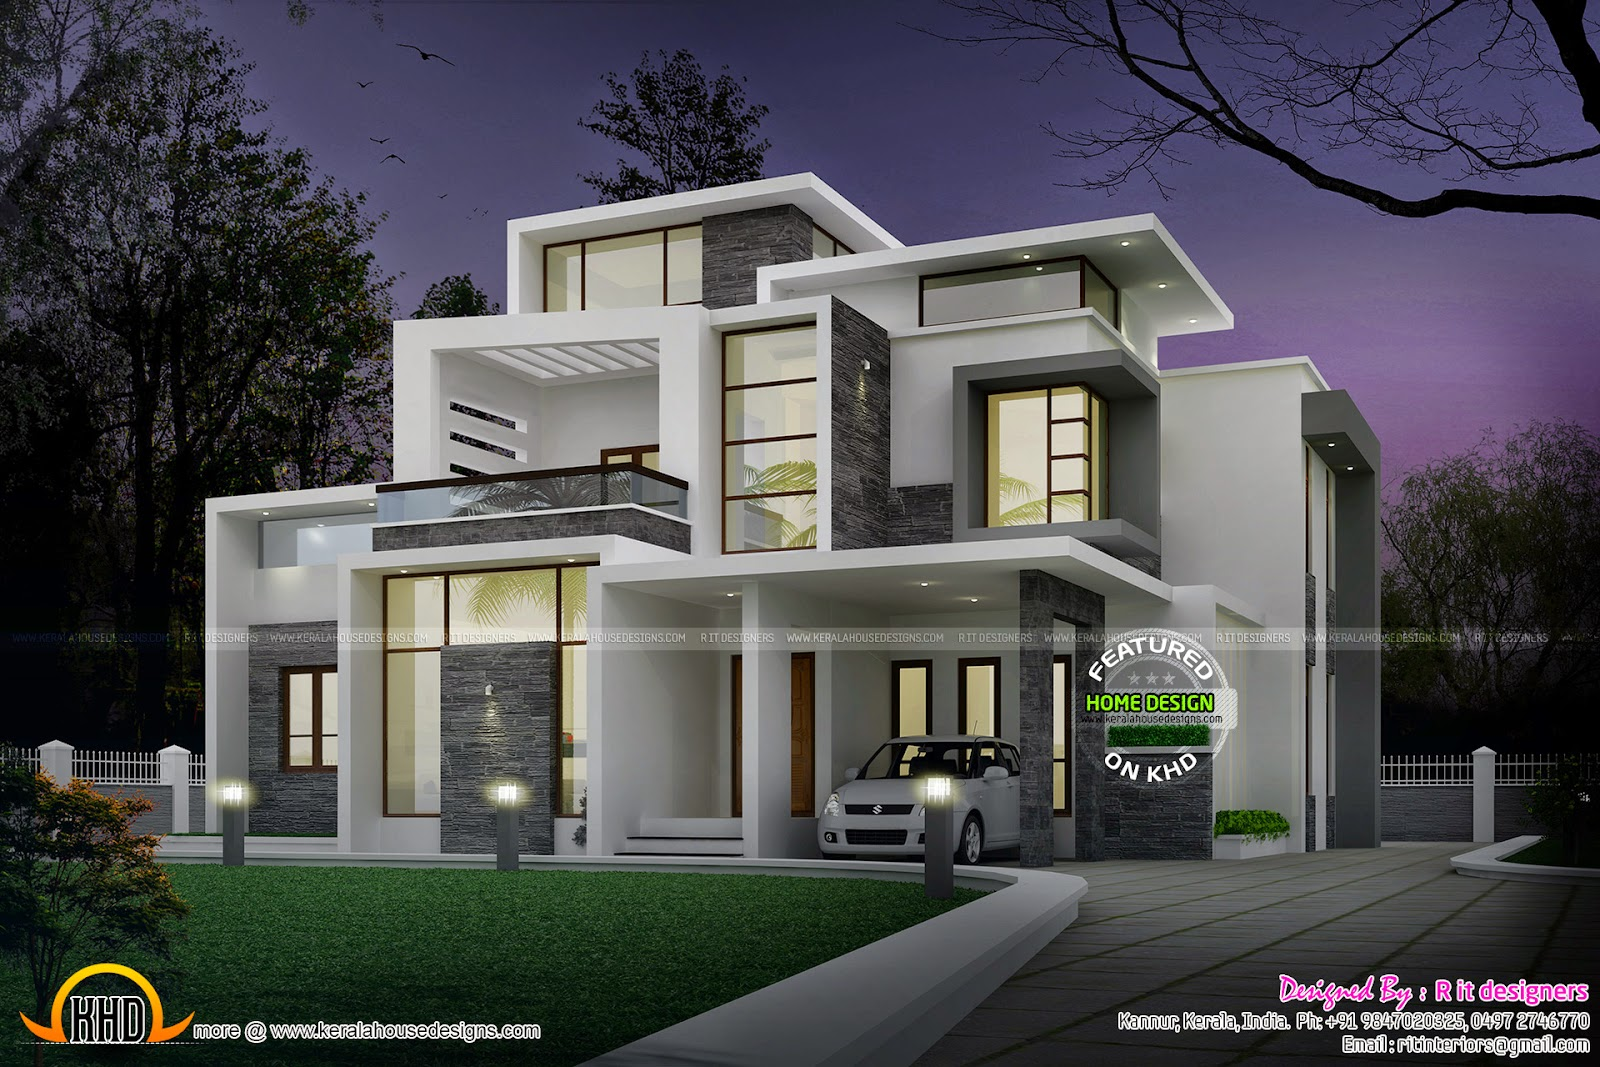 Grand contemporary home design kerala home design and for Home building design